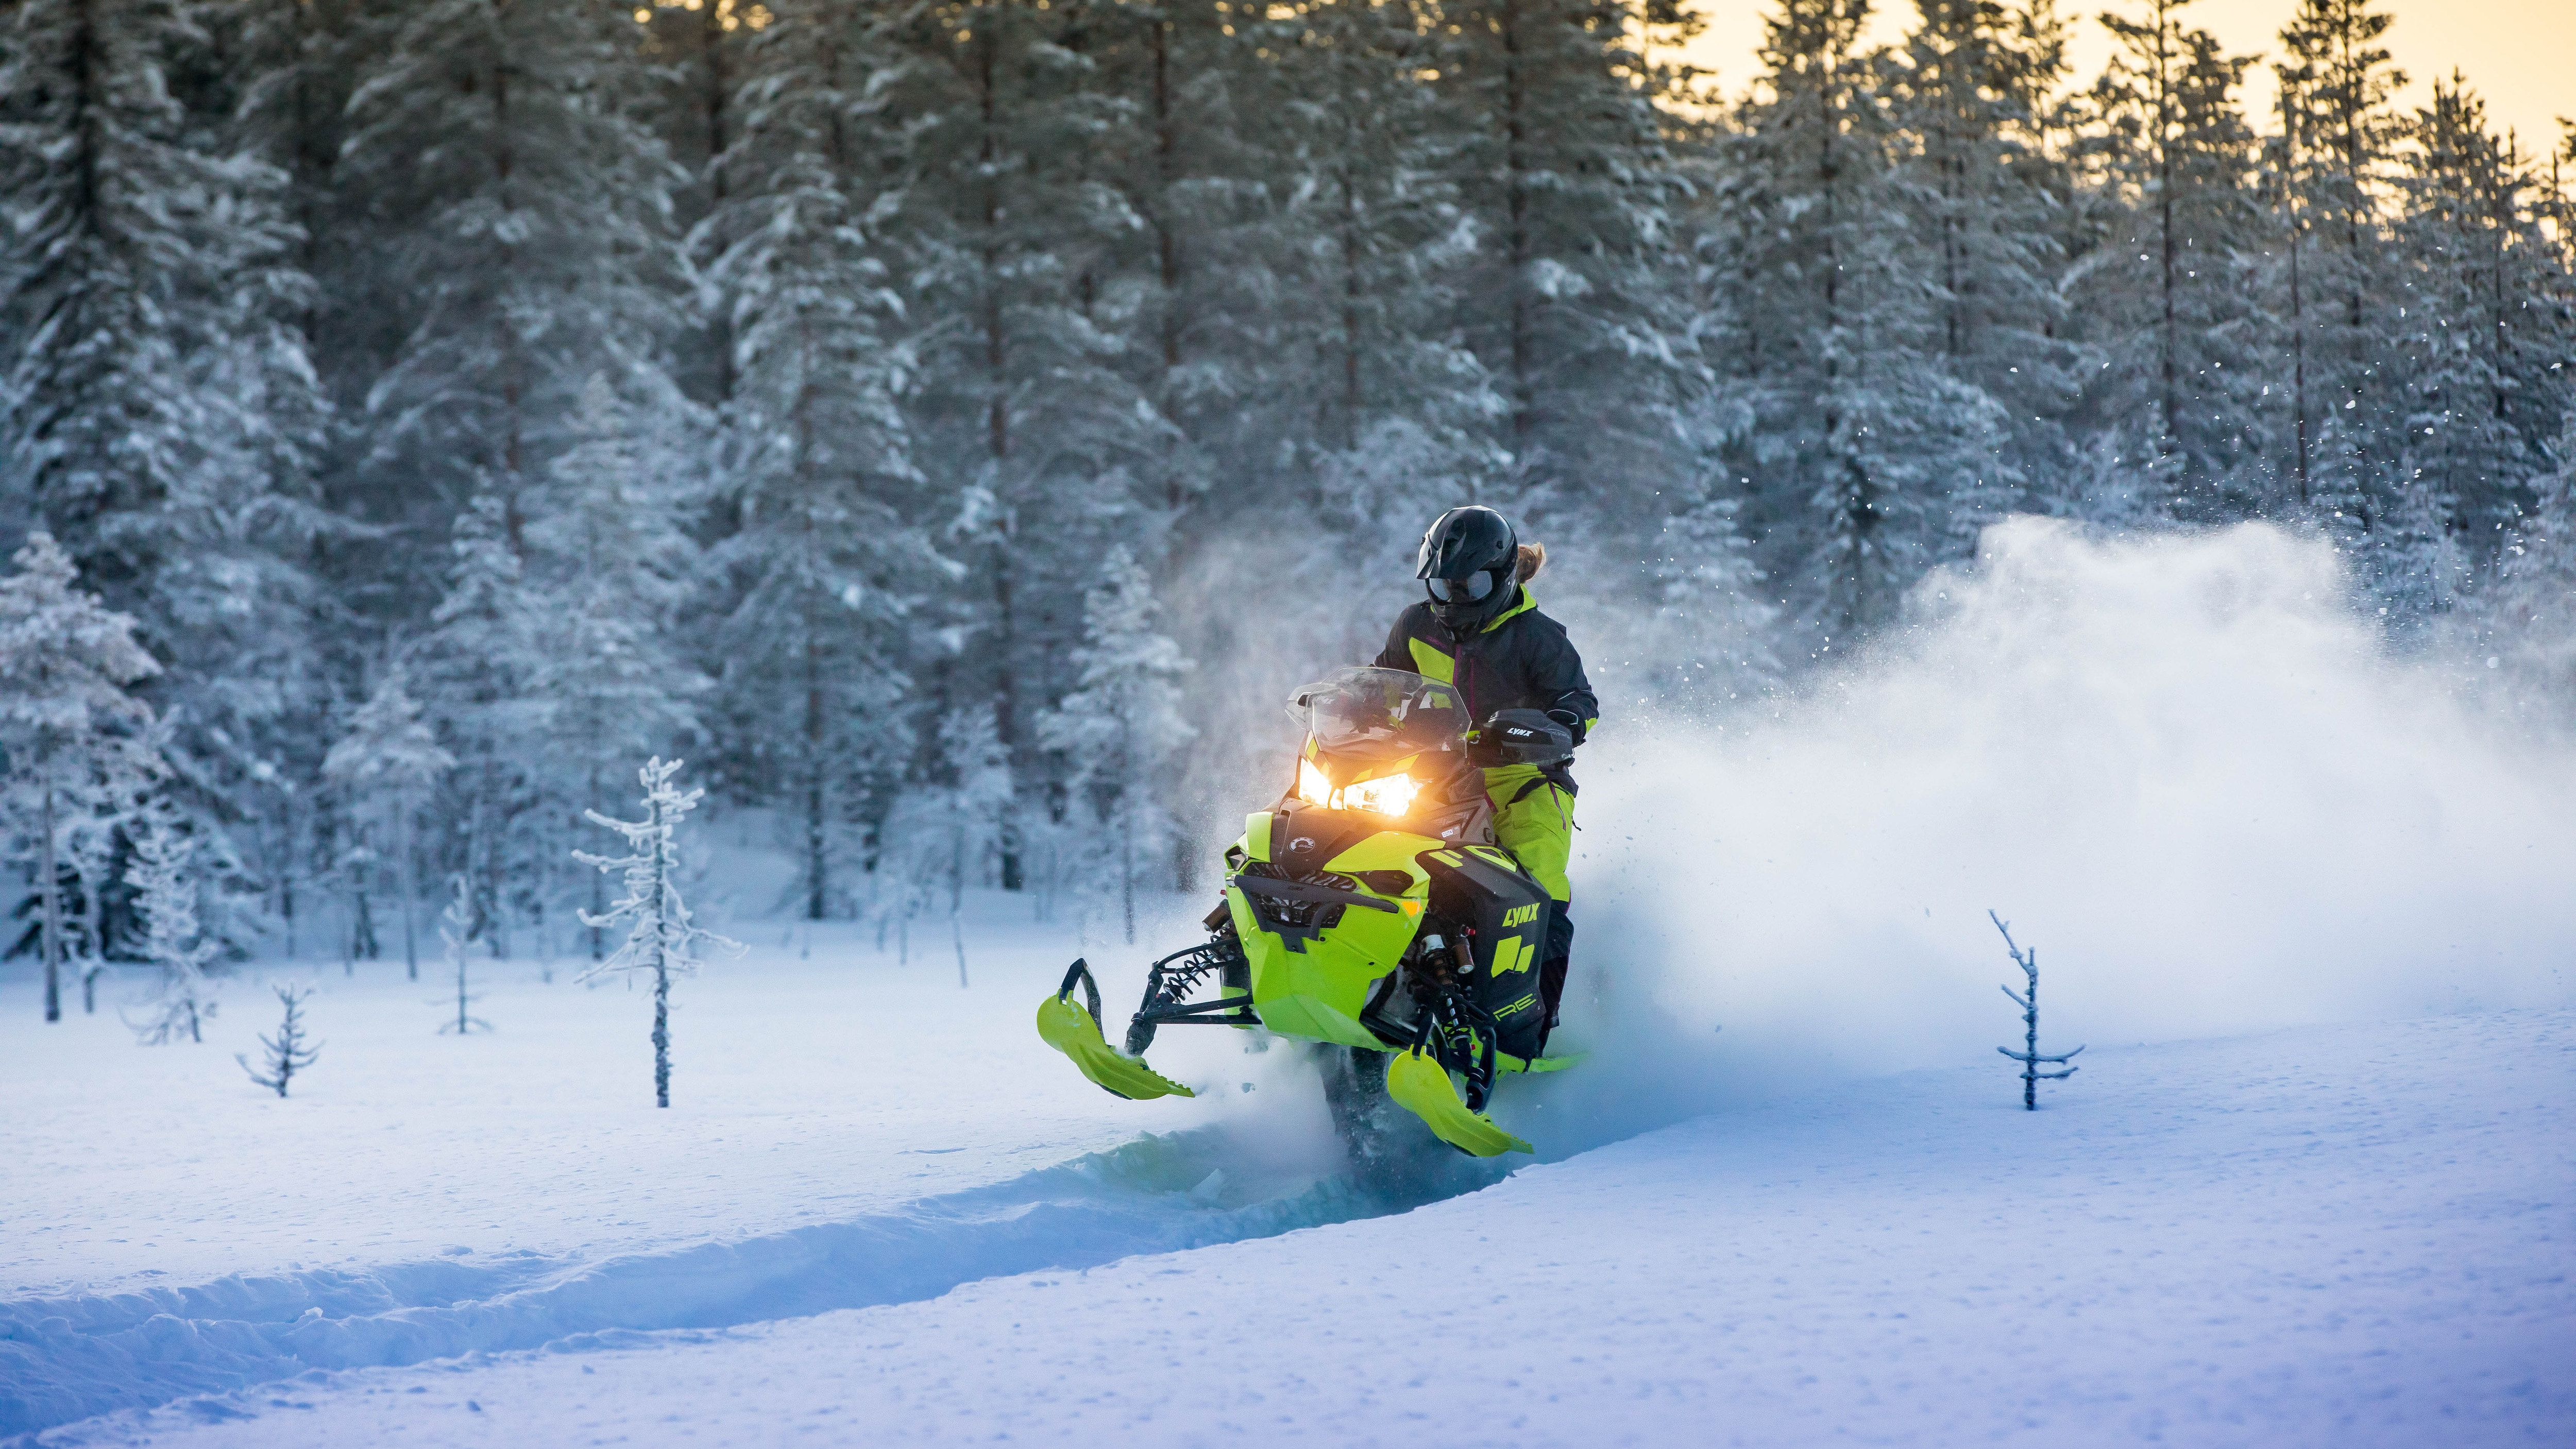 2021 Lynx snowmobile line-up